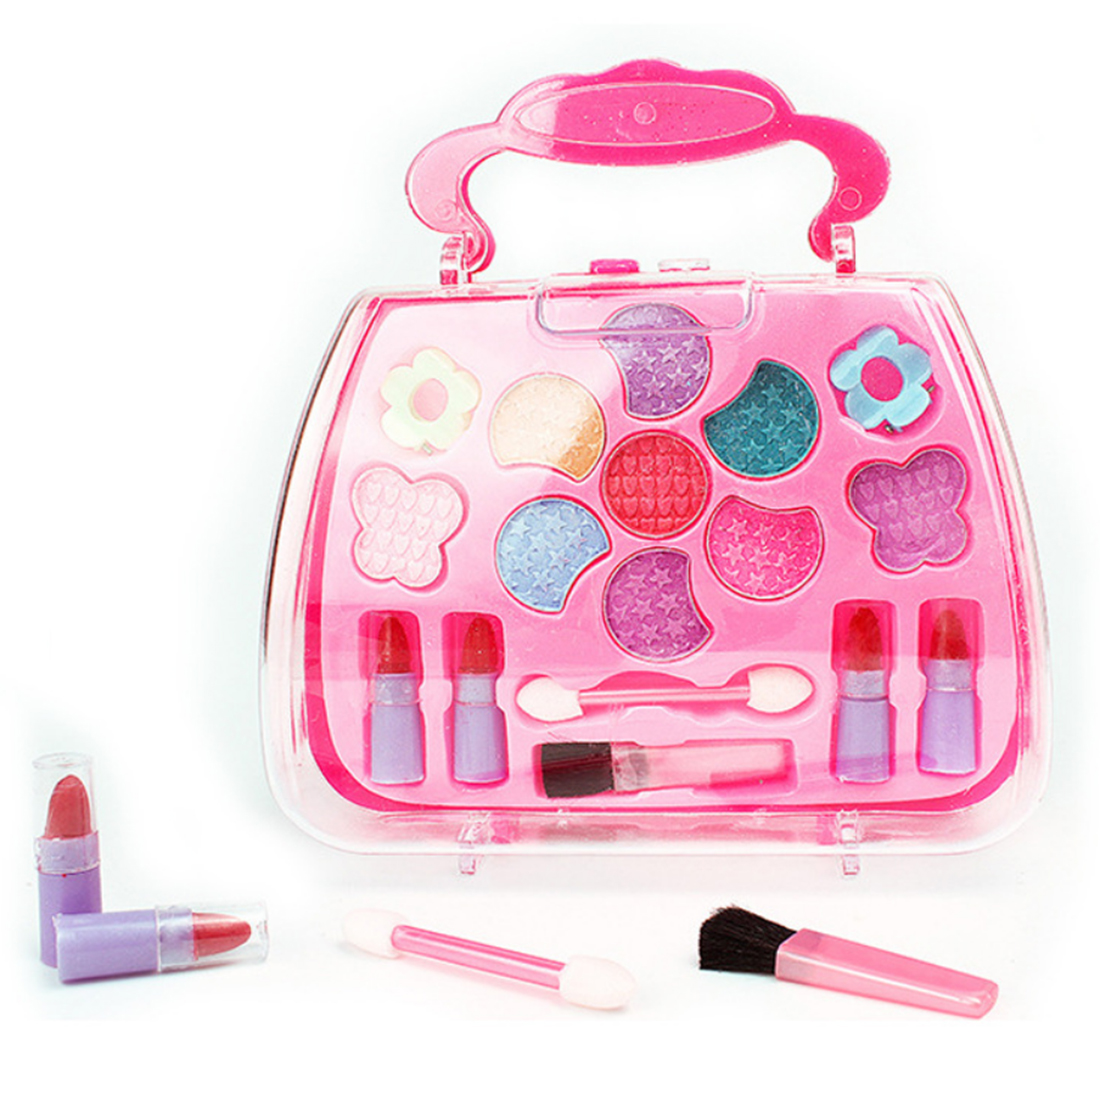 Children Pretend Beauty Fashion Play Toys New Arrive Cosmetics Gift Set for Girls Party Makeup Playing KitsChildren Pretend Beauty Fashion Play Toys New Arrive Cosmetics Gift Set for Girls Party Makeup Playing Kits